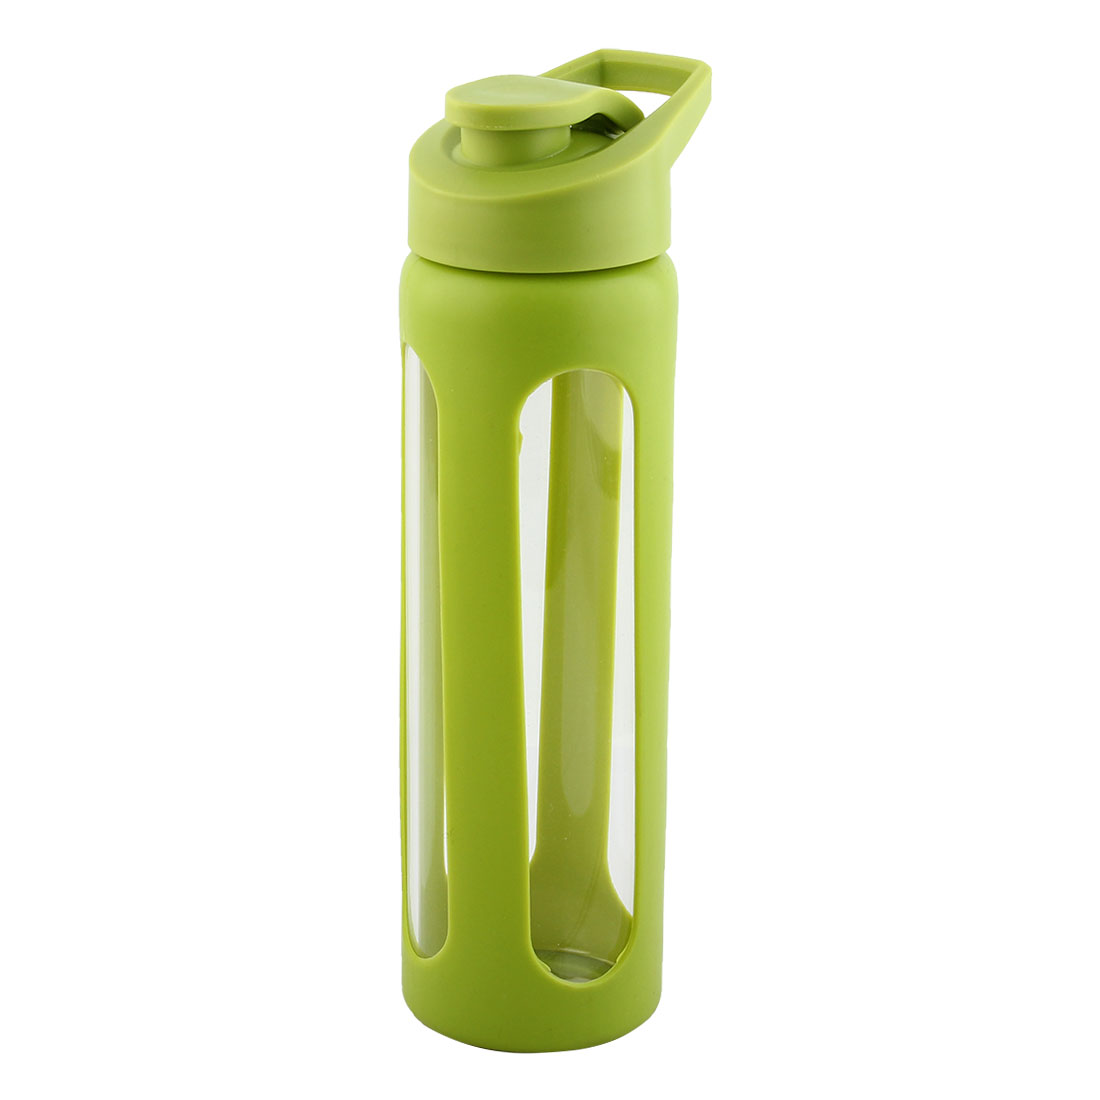 Silicone Sleeve Water Bottle Camping Cup Portable Driking Mug Cycling Driving Canteen Hiking Kettle Green 550ml